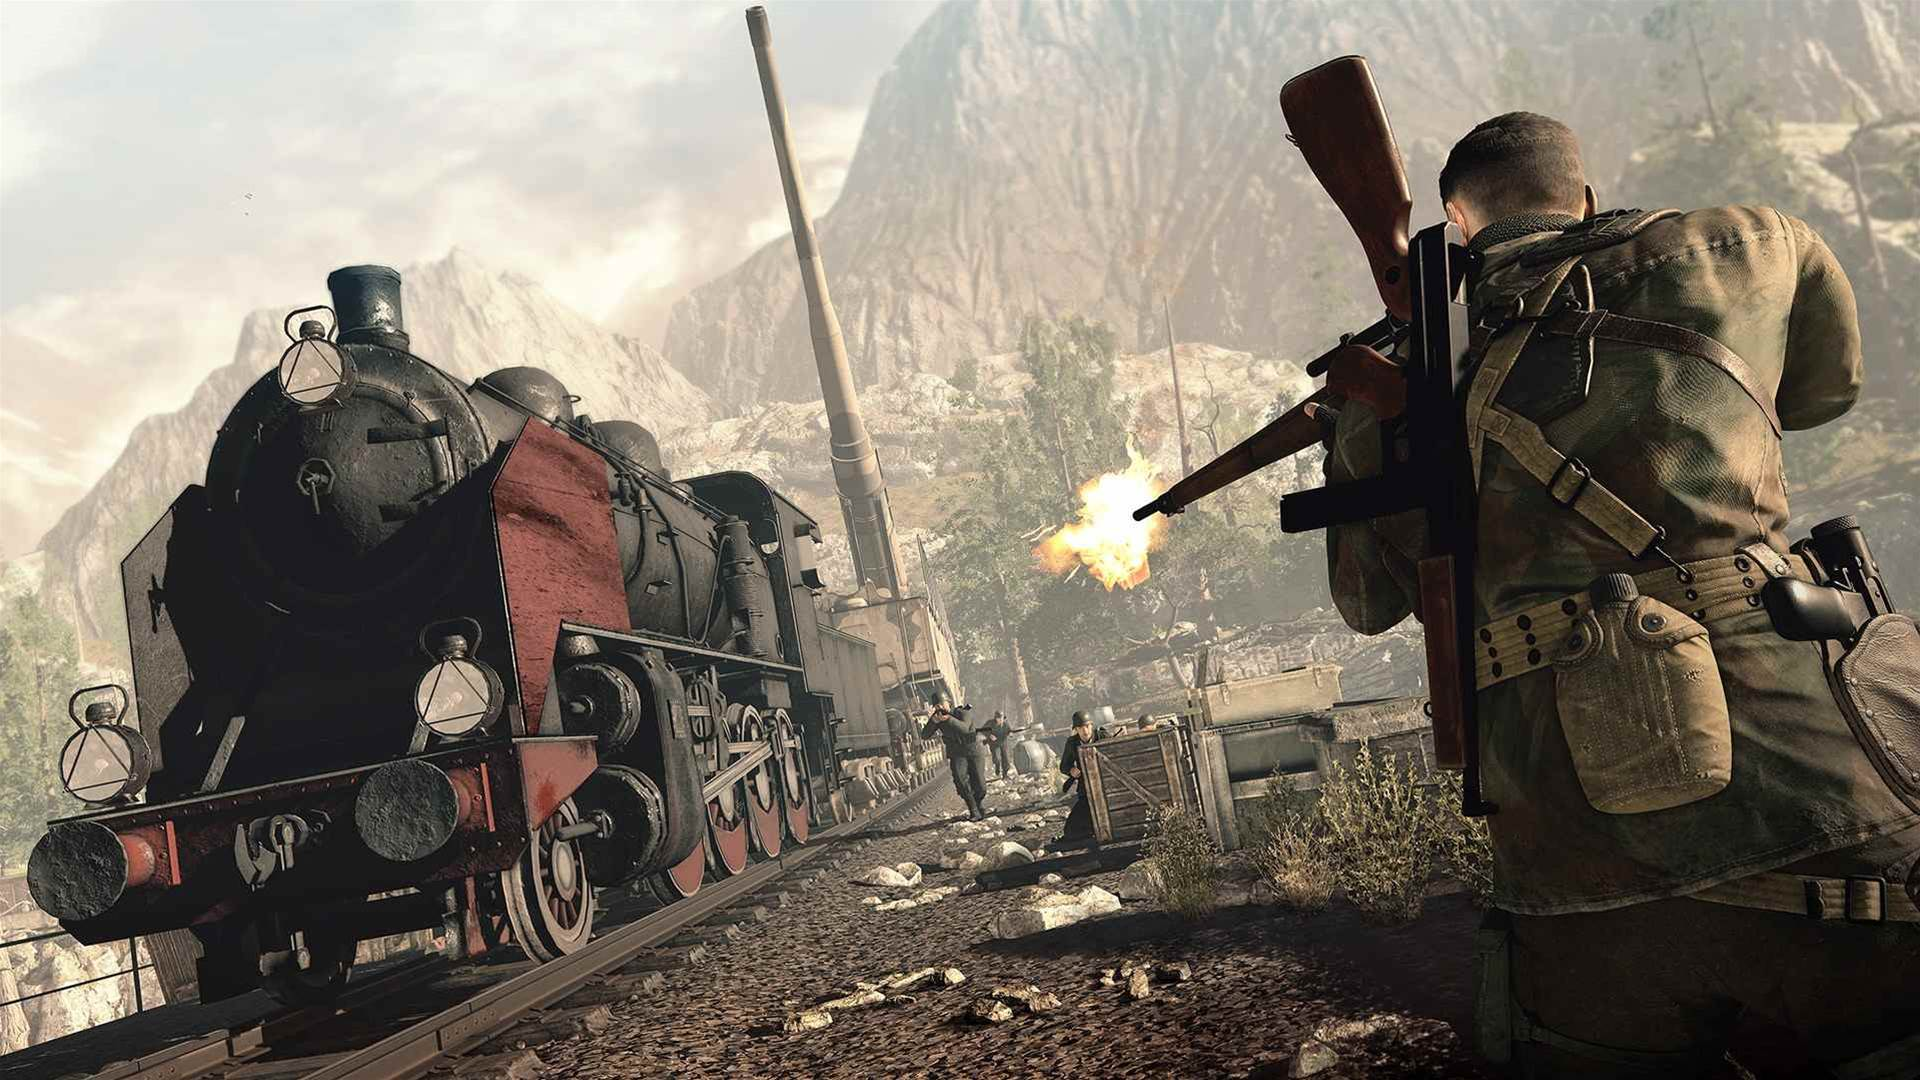 A loaded mag of Sniper Elite 4 shots